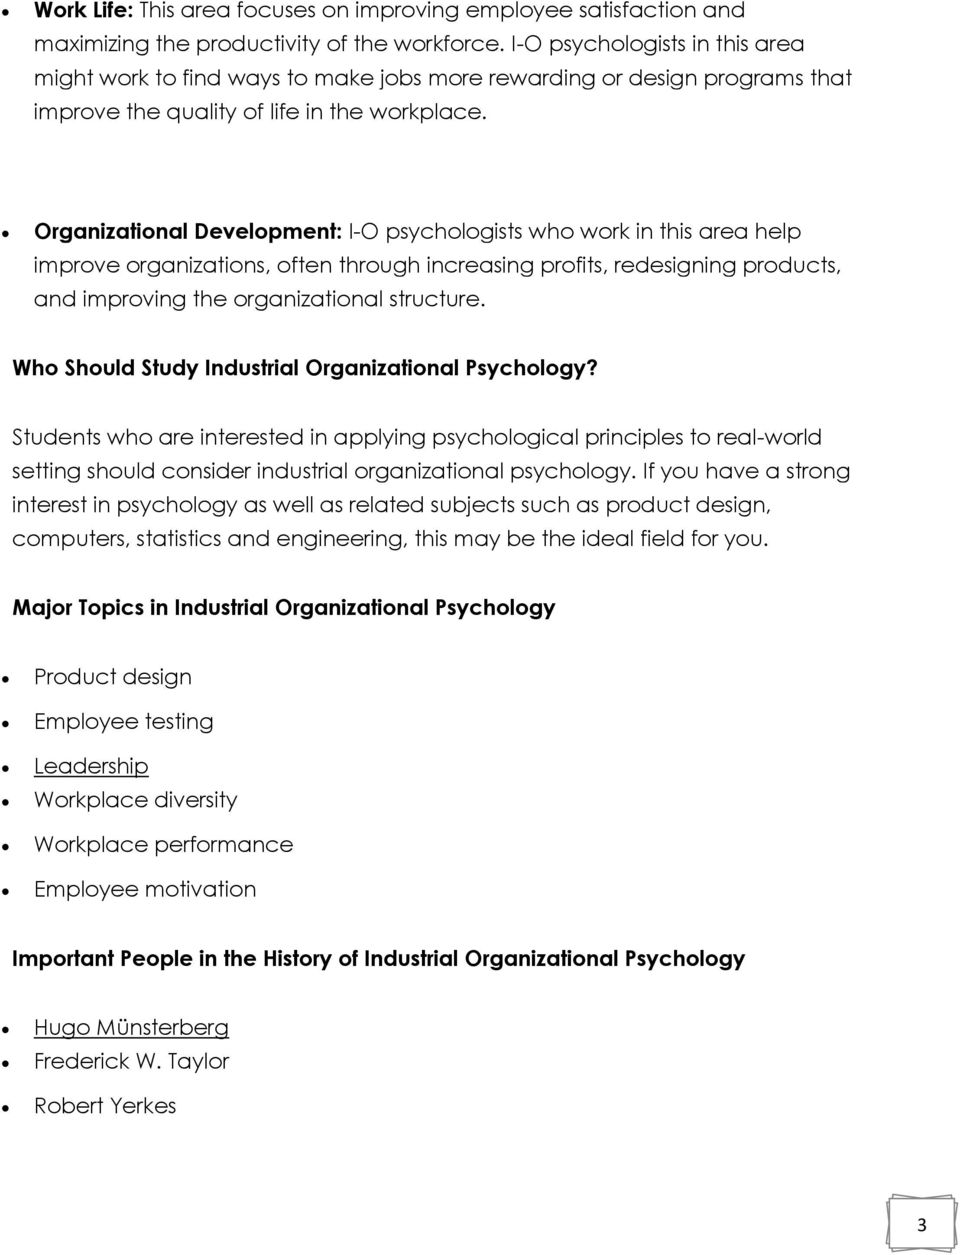 Organizational Development: I-O psychologists who work in this area help improve organizations, often through increasing profits, redesigning products, and improving the organizational structure.